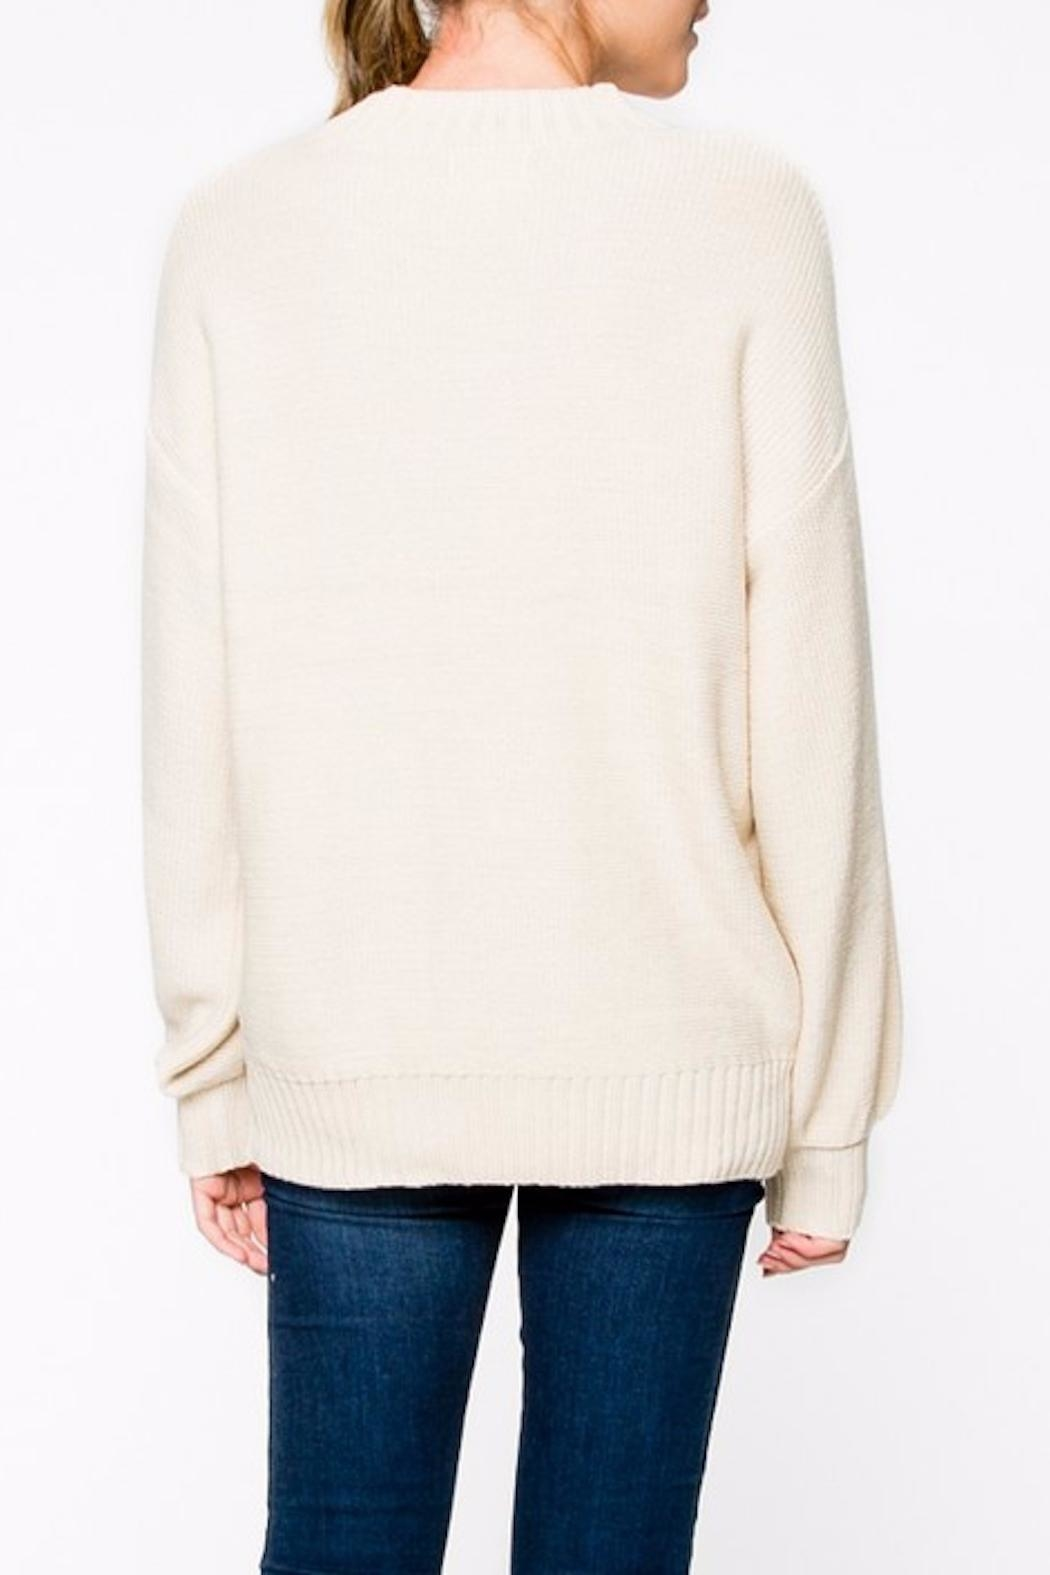 Apricot Lane Braided Front Sweater - Side Cropped Image